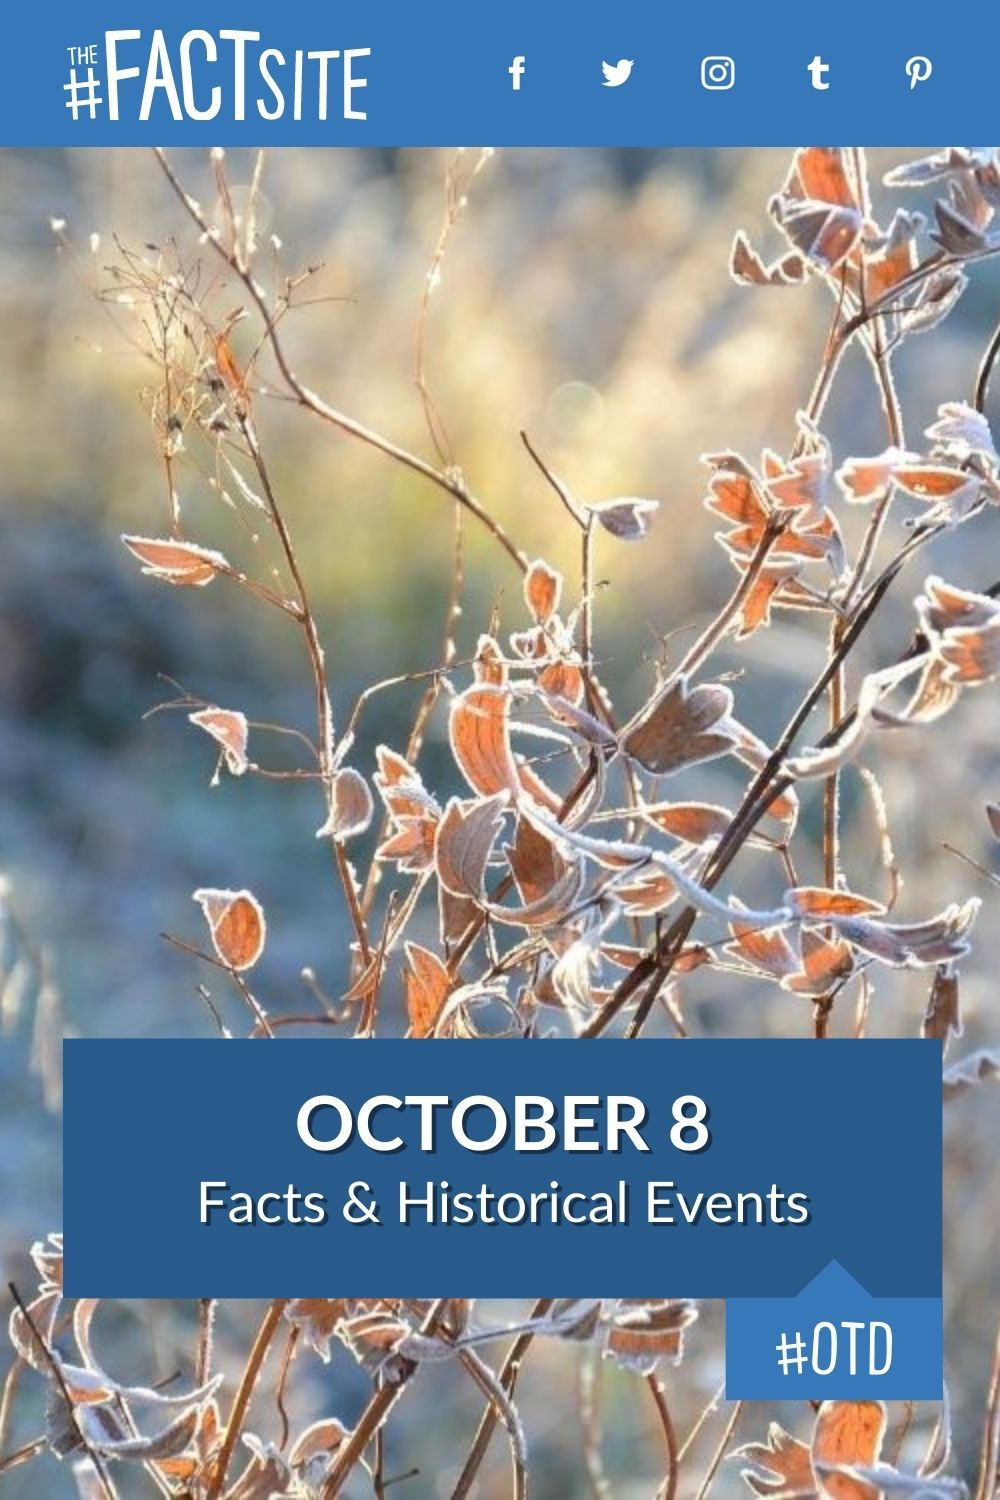 Facts & Historic Events That Happened on October 8